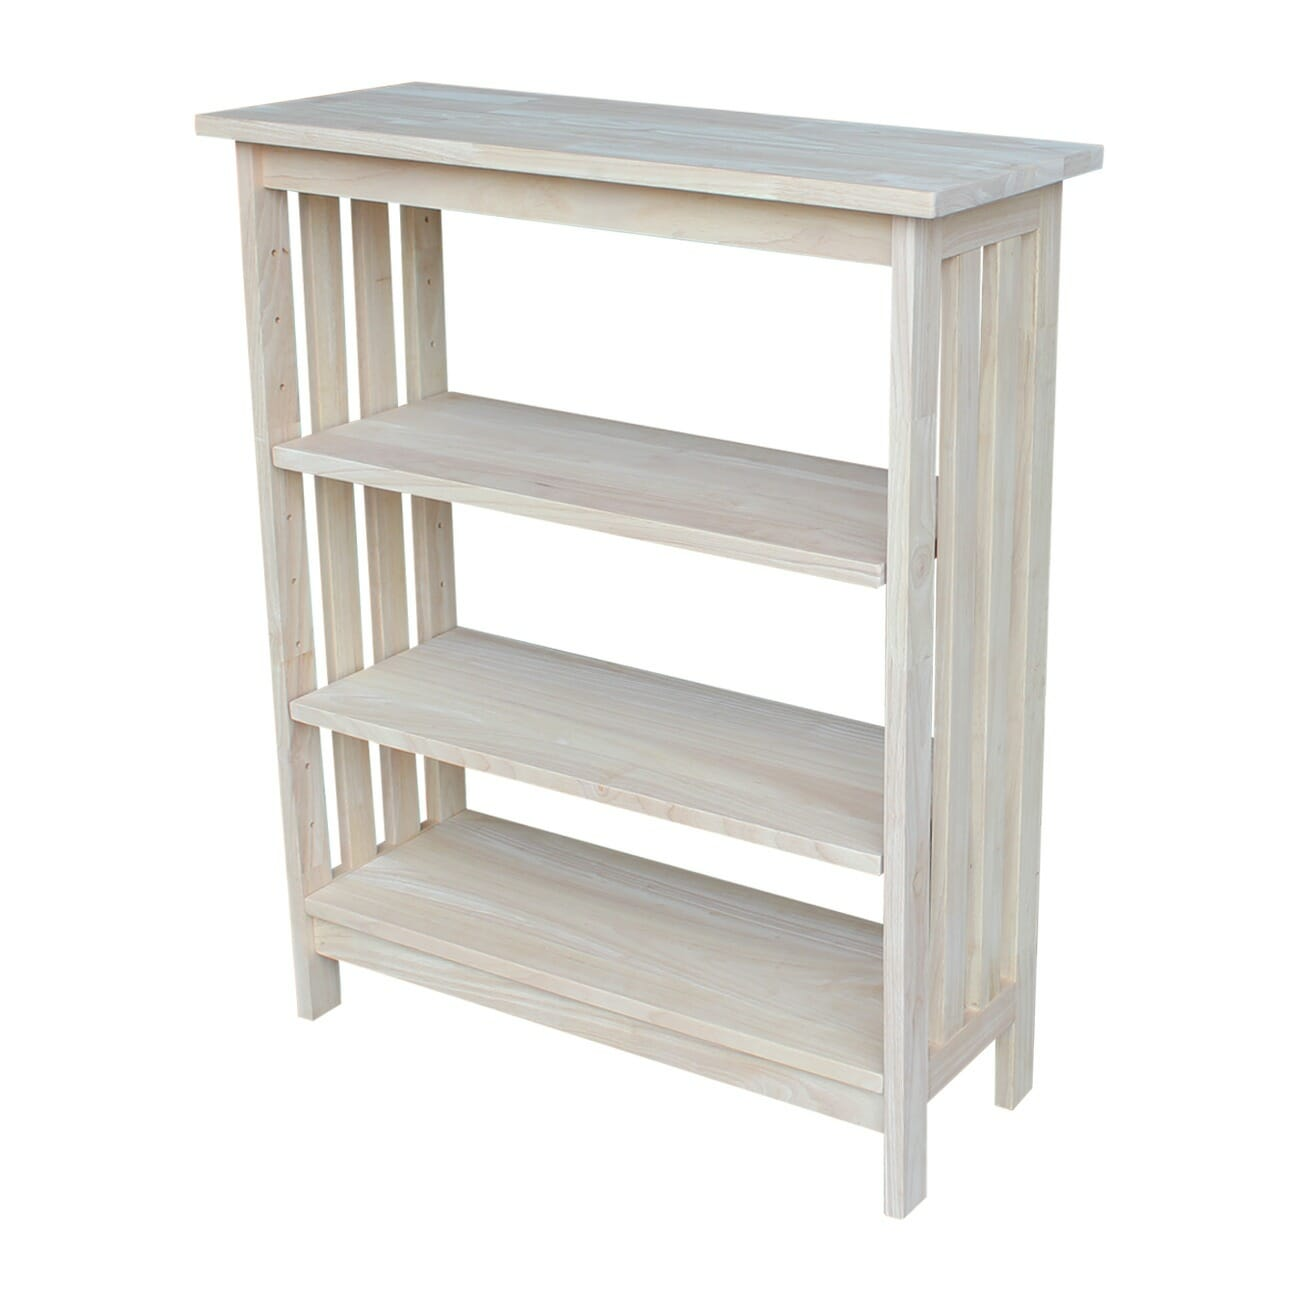 Sh 3630m 36 Inch Tall Mission Bookcase